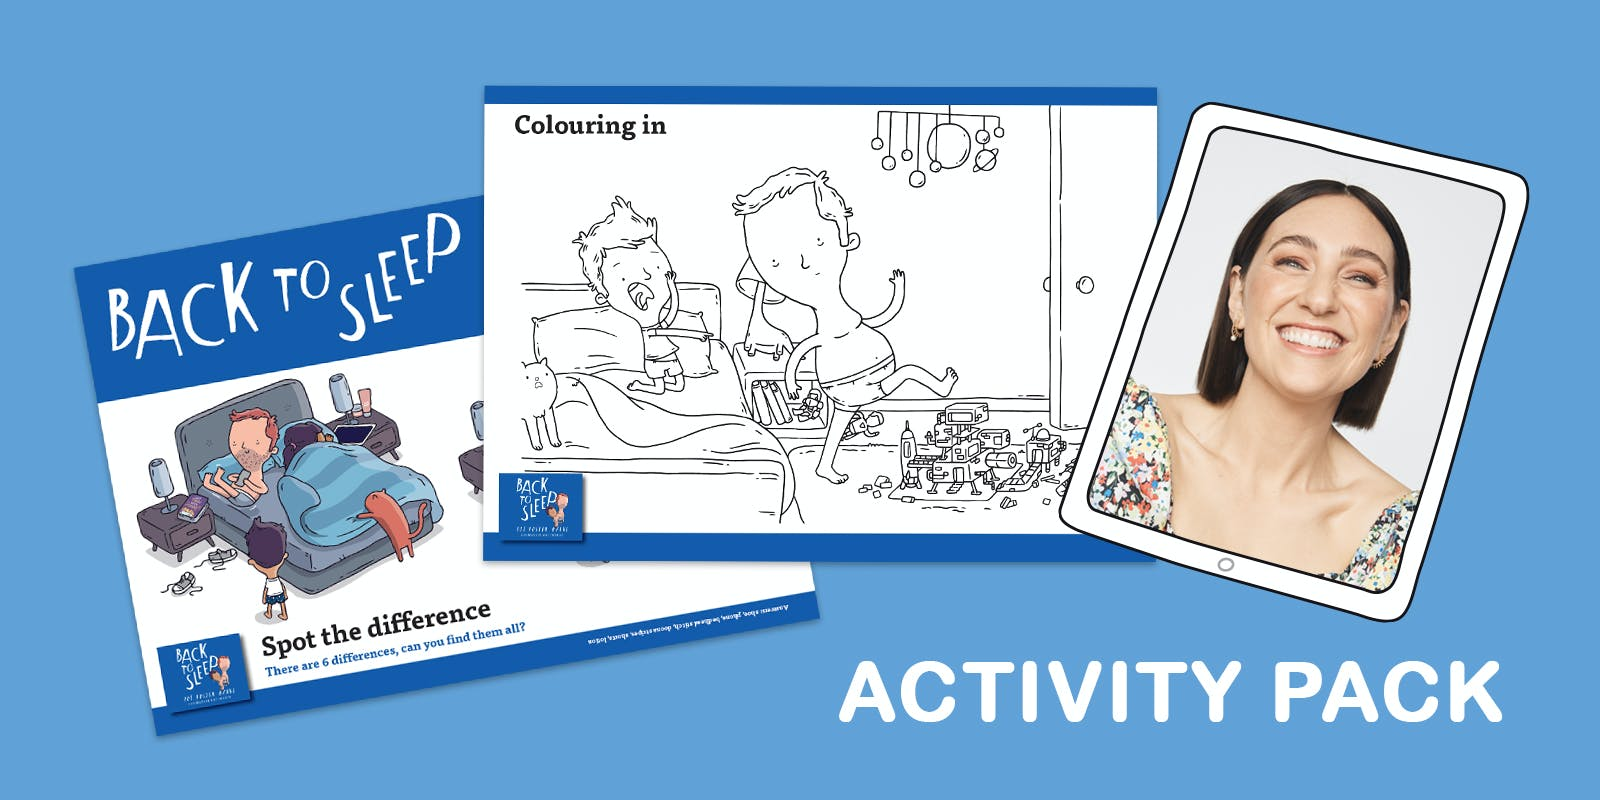 Back to Sleep Activity Pack